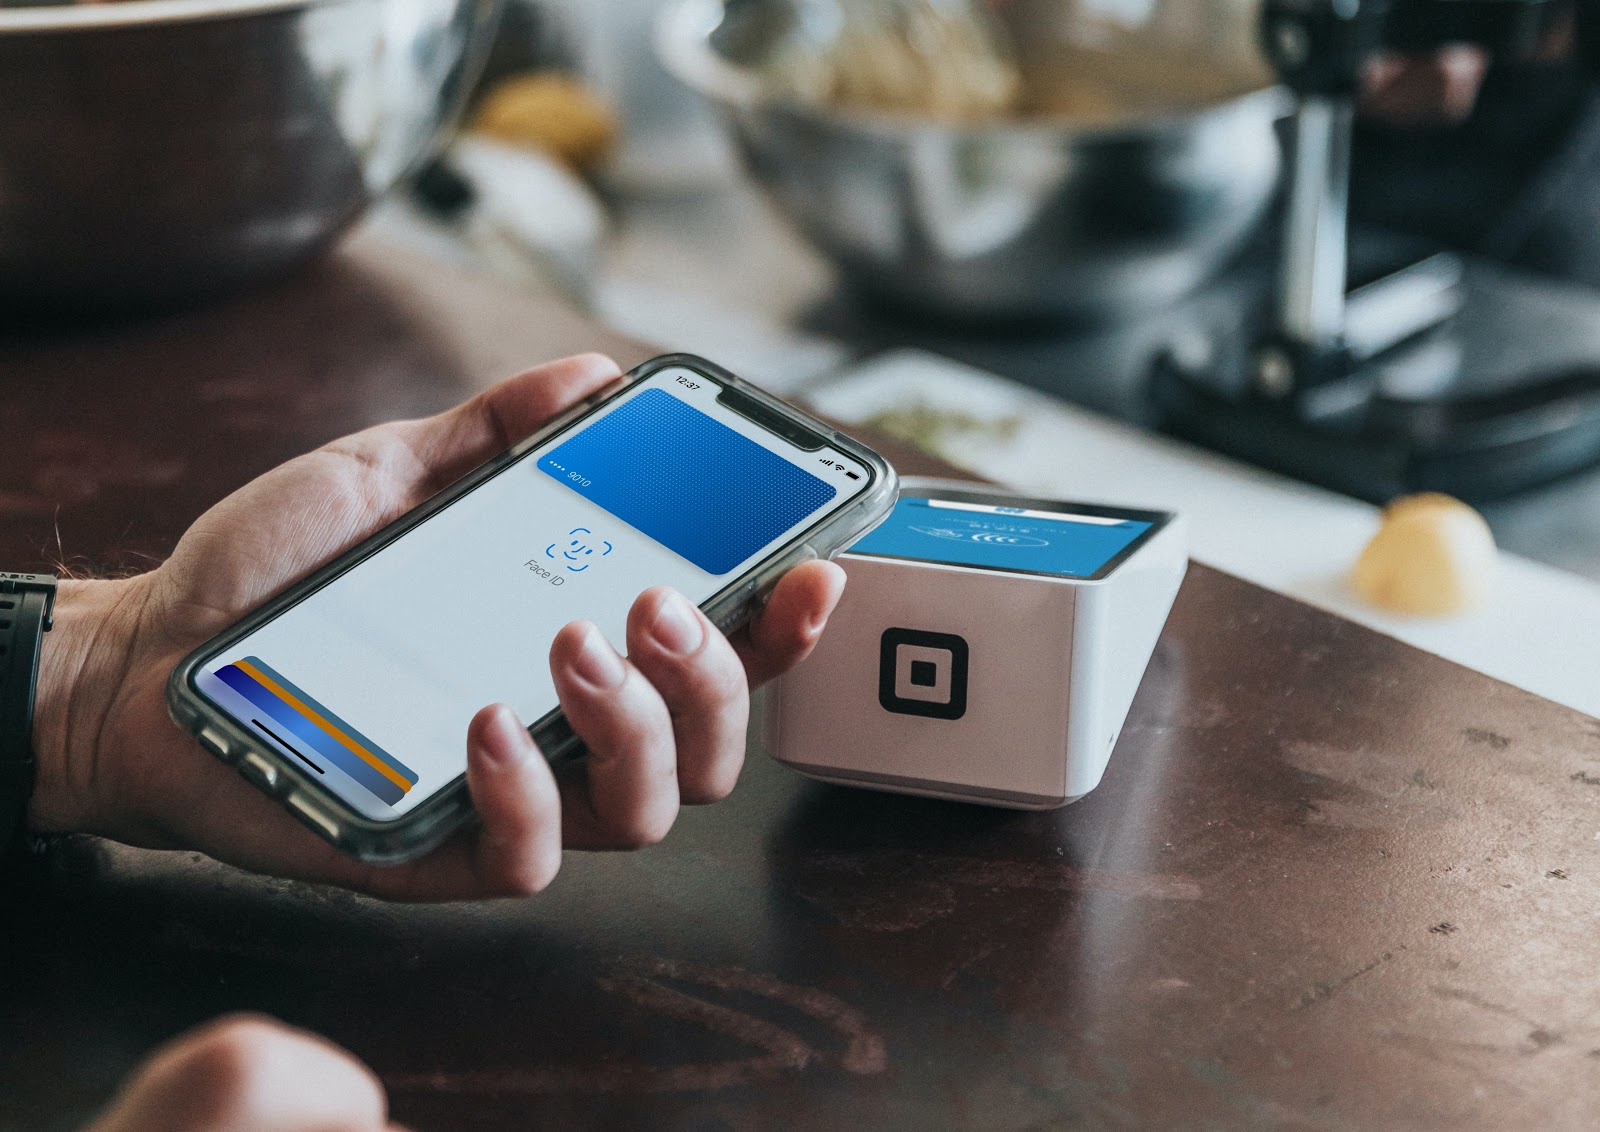 Image of a phone doing apple pay.